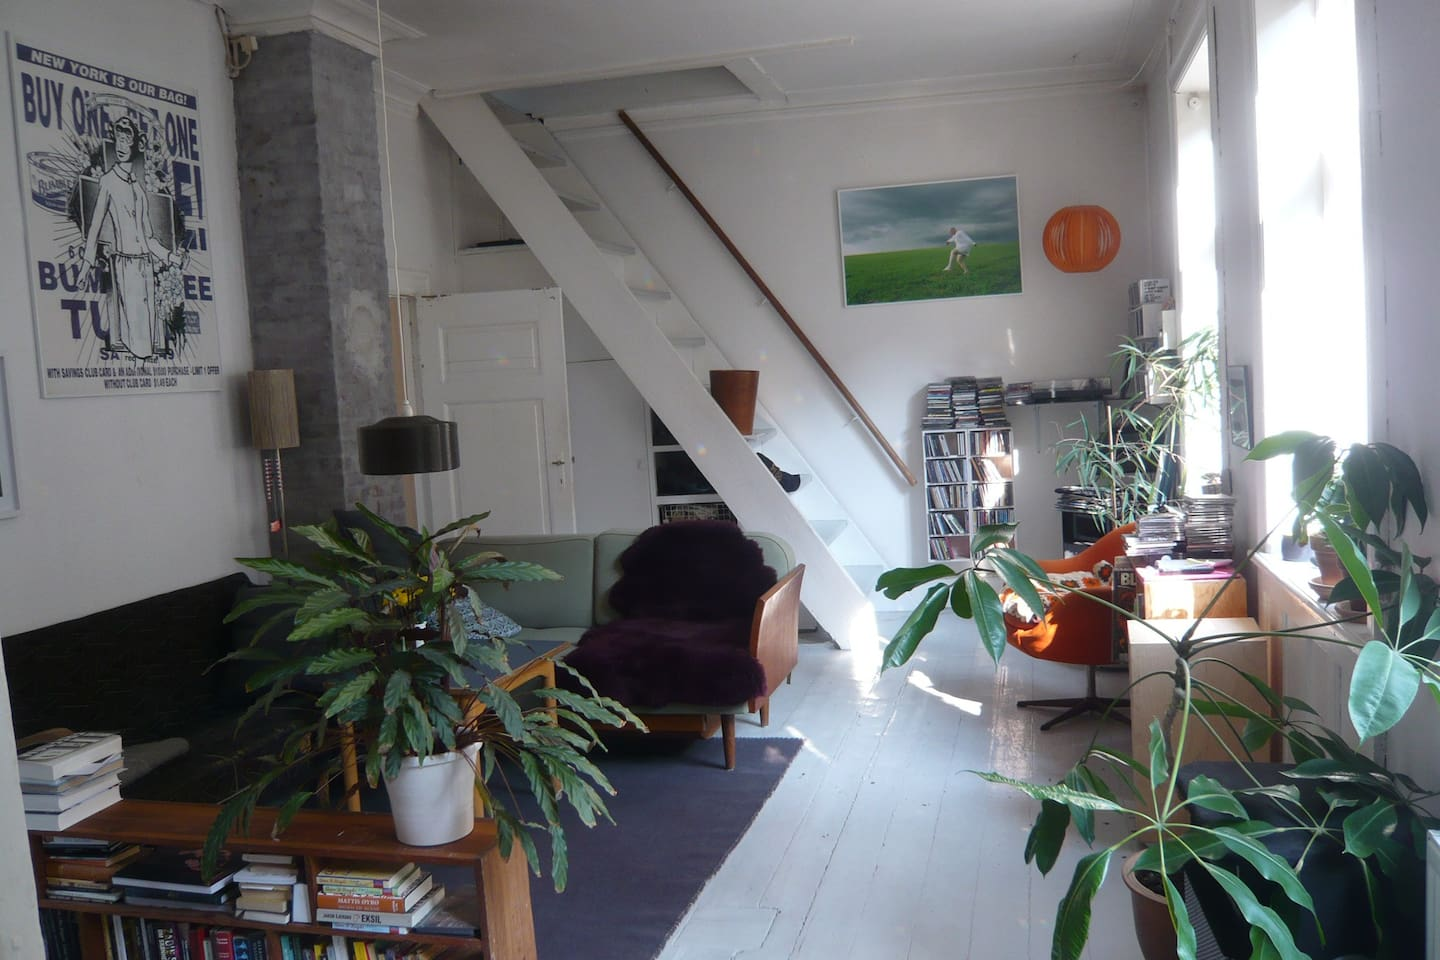 Living room. Stairs and door to bedrooms